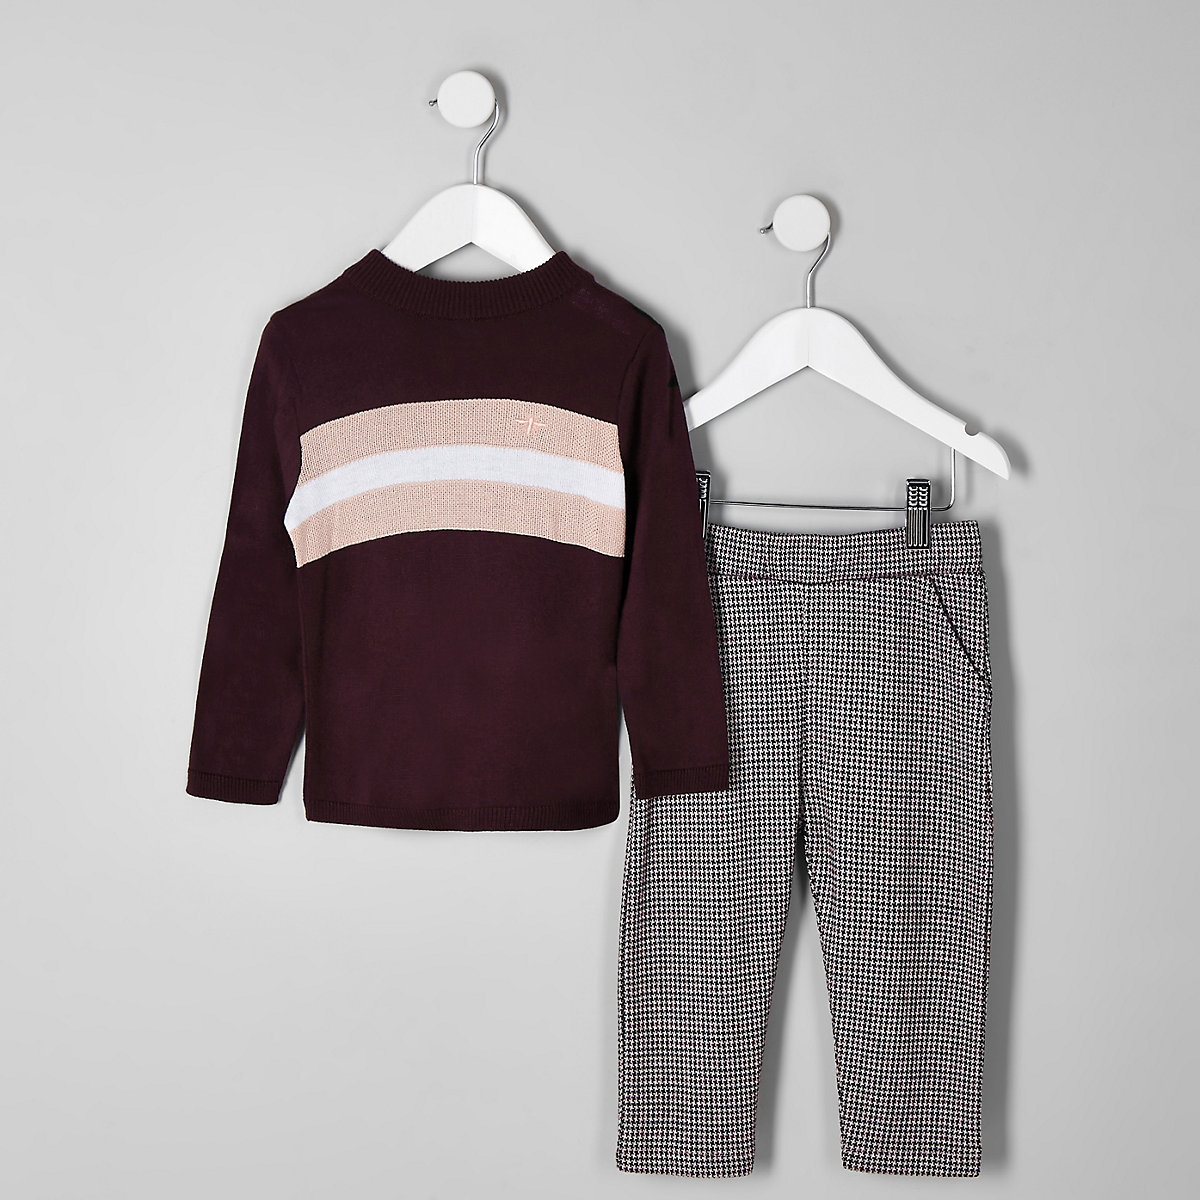 Mini boys red color block outfit